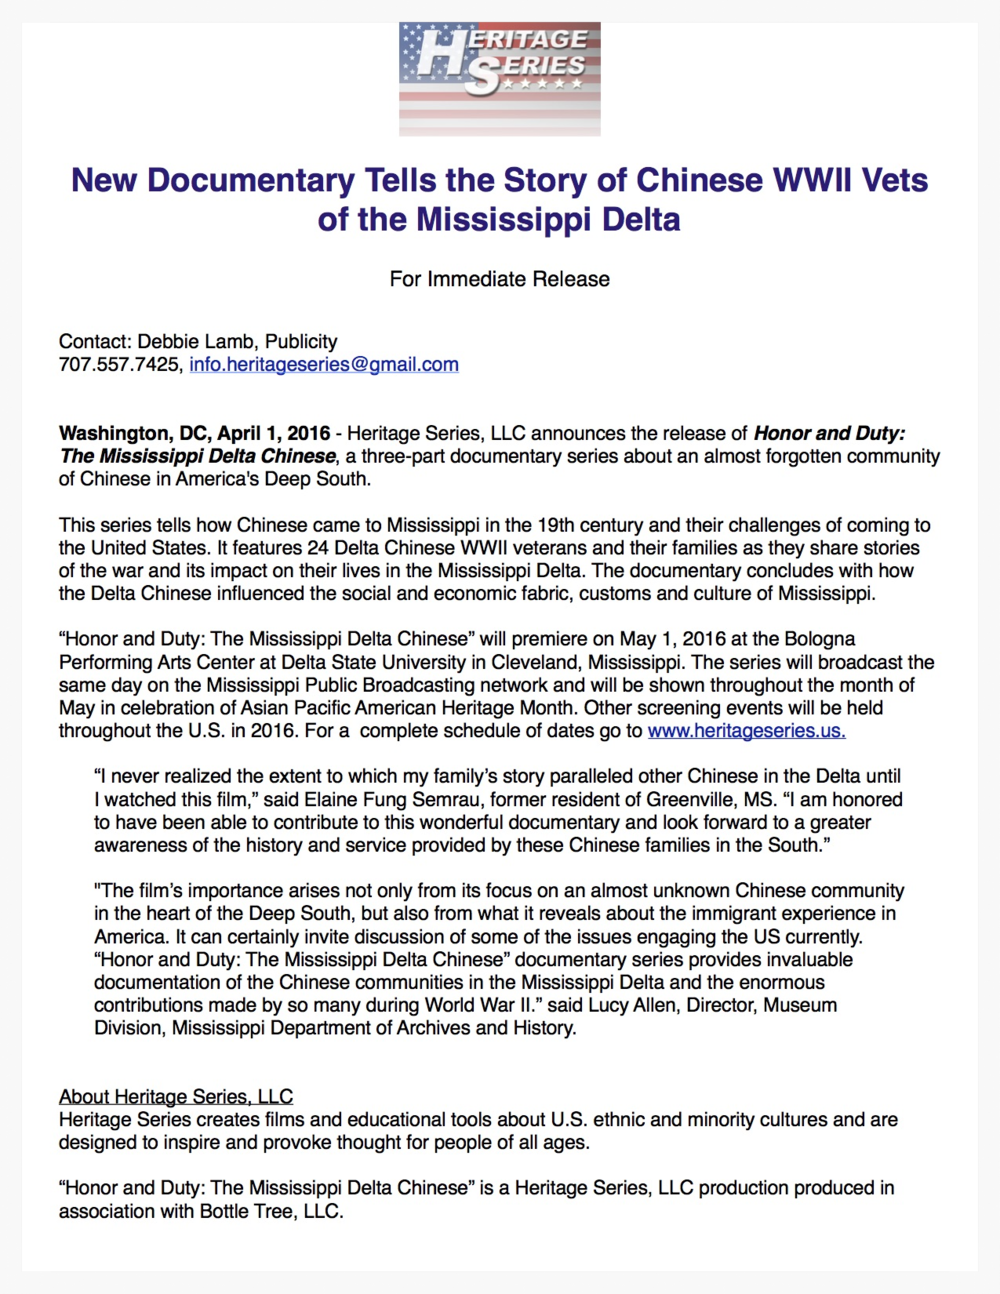 New Documentary tells story of Chinese Veterans of Mississippi Delta